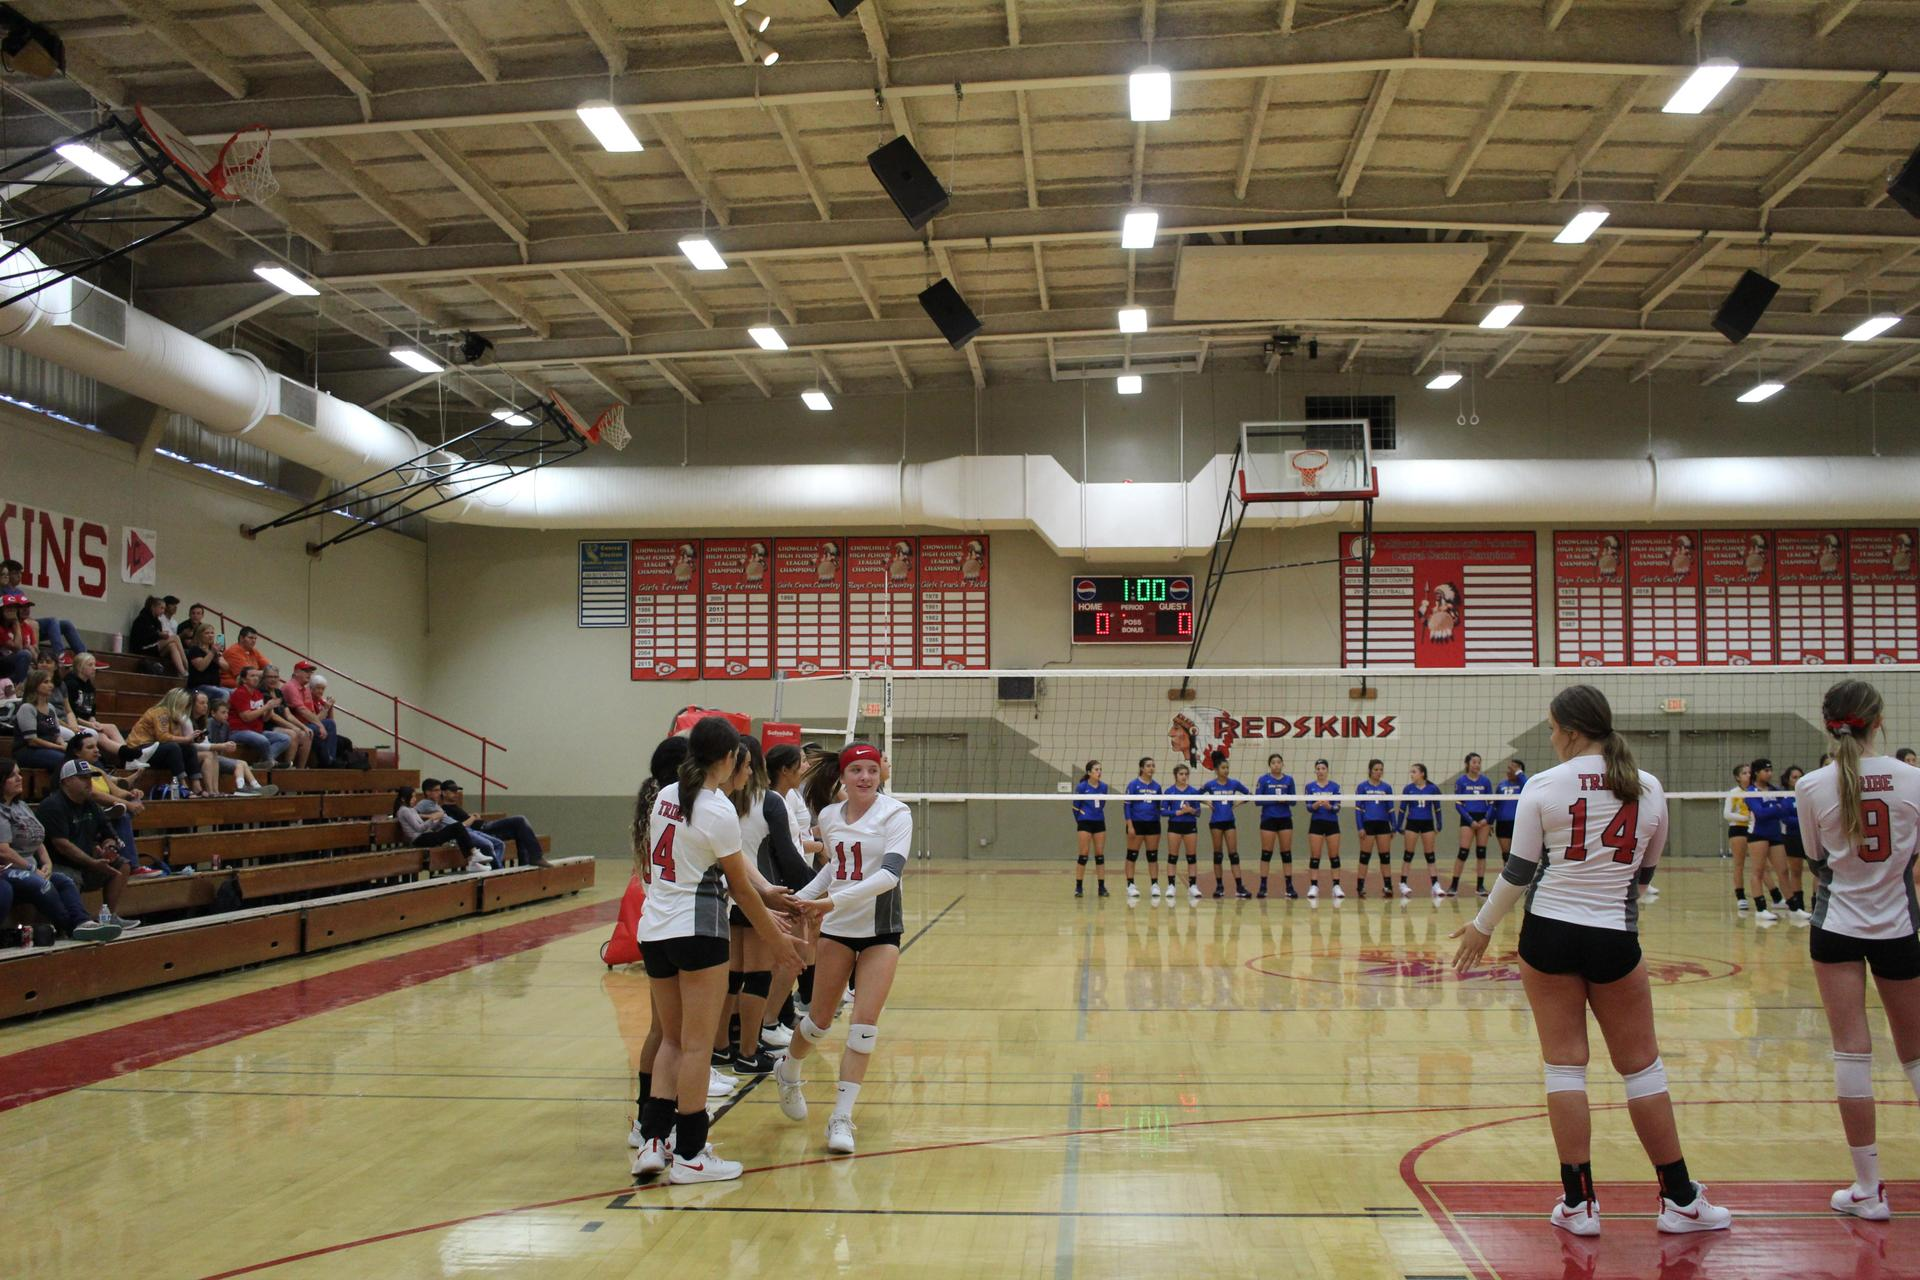 varsity girls playing volleyball against dos palosvarsity girls playing volleyball against dos palos